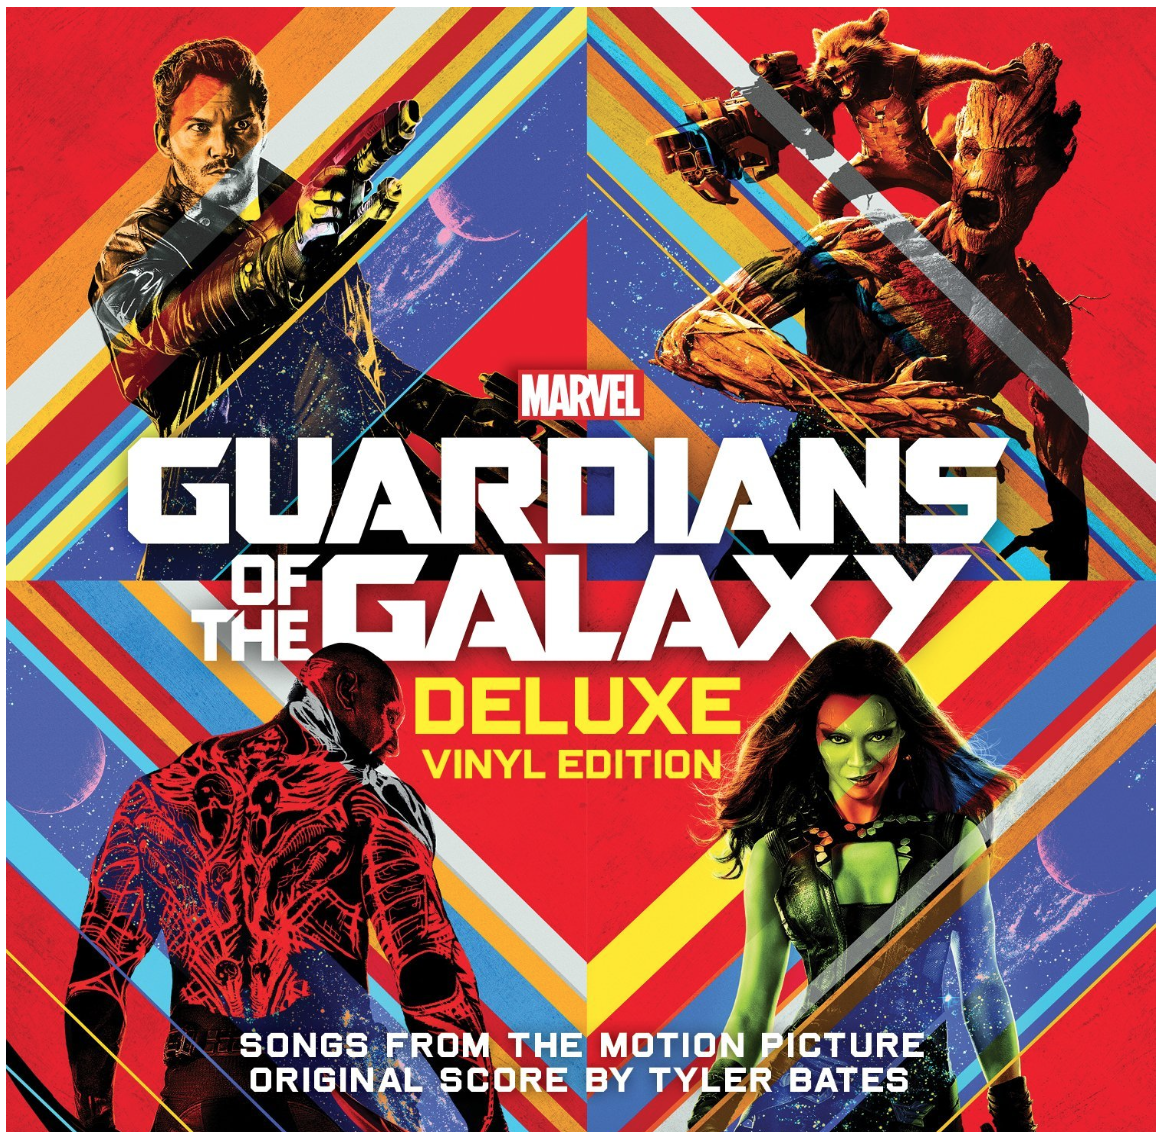 Preorder The Deluxe Vinyl Edition Soundtrack For